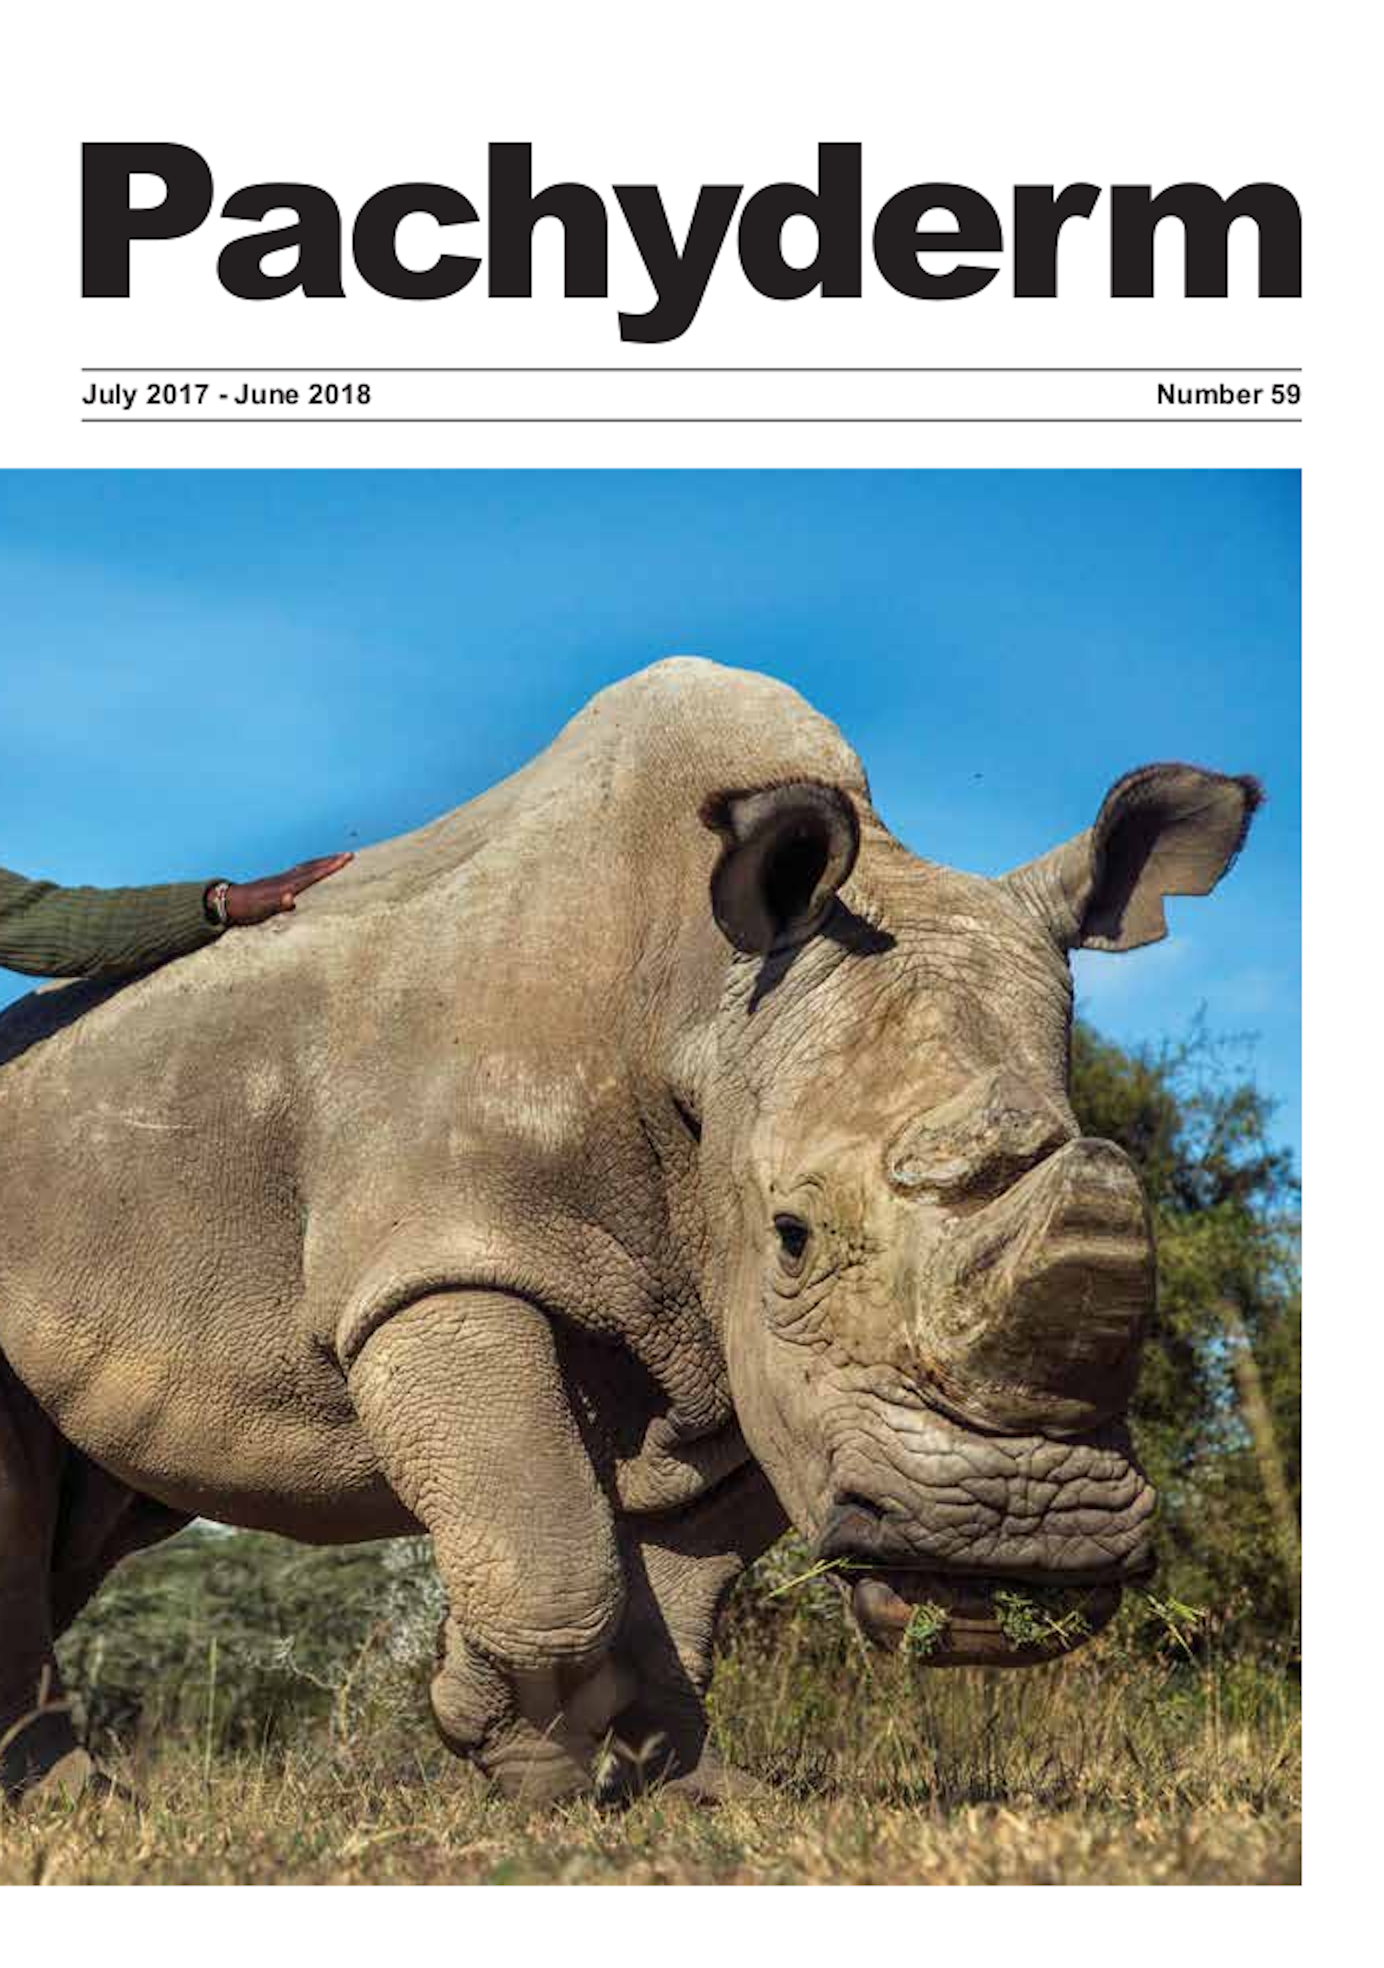 Cover caption: The world's last male northern white rhinoceros Sudan who died on the 31 March 2018 at the age of 45 from age-related complications, is pictured with his faithful rangers: John Mutugi Mugo (front), and Daniel Kamau Maina (behind). Sudan was born in Shambe Game Reserve, now southern Sudan, and exported to the Dvůr Králové Zoo in former Czechoslovakia in 1975 together with five other rhinos. In 2009 following intervention by the AfRSG it was recommended that Sudan and his group were moved to a more natural environment to potentially enhance breeding at the Ol Pejeta Conservancy, Kenya. Sadly, breeding has not been successful. The northern white rhino was declared extinct in the wild by 2010. There are only two remaining captive northern white rhino in the world— Sudan's daughter, Najin and grand-daughter, Fatu. ©Georgina Goodwin